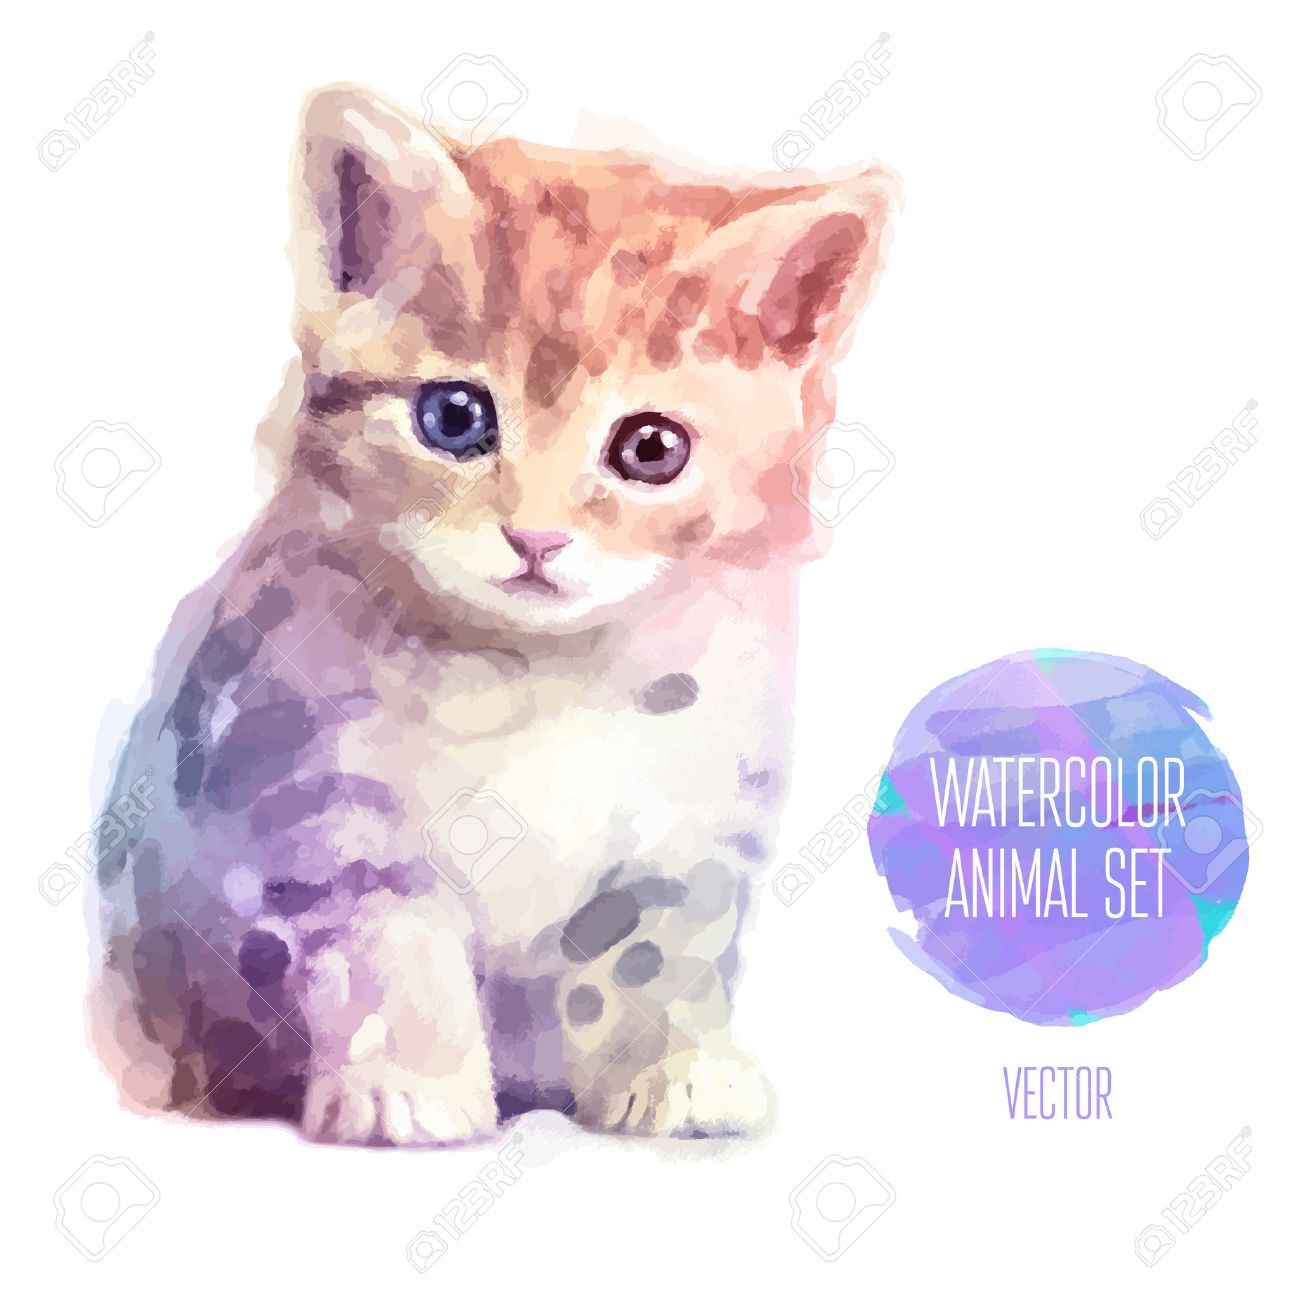 Vector set of watercolor illustrations. Cute cat Stock Vector - 40188225